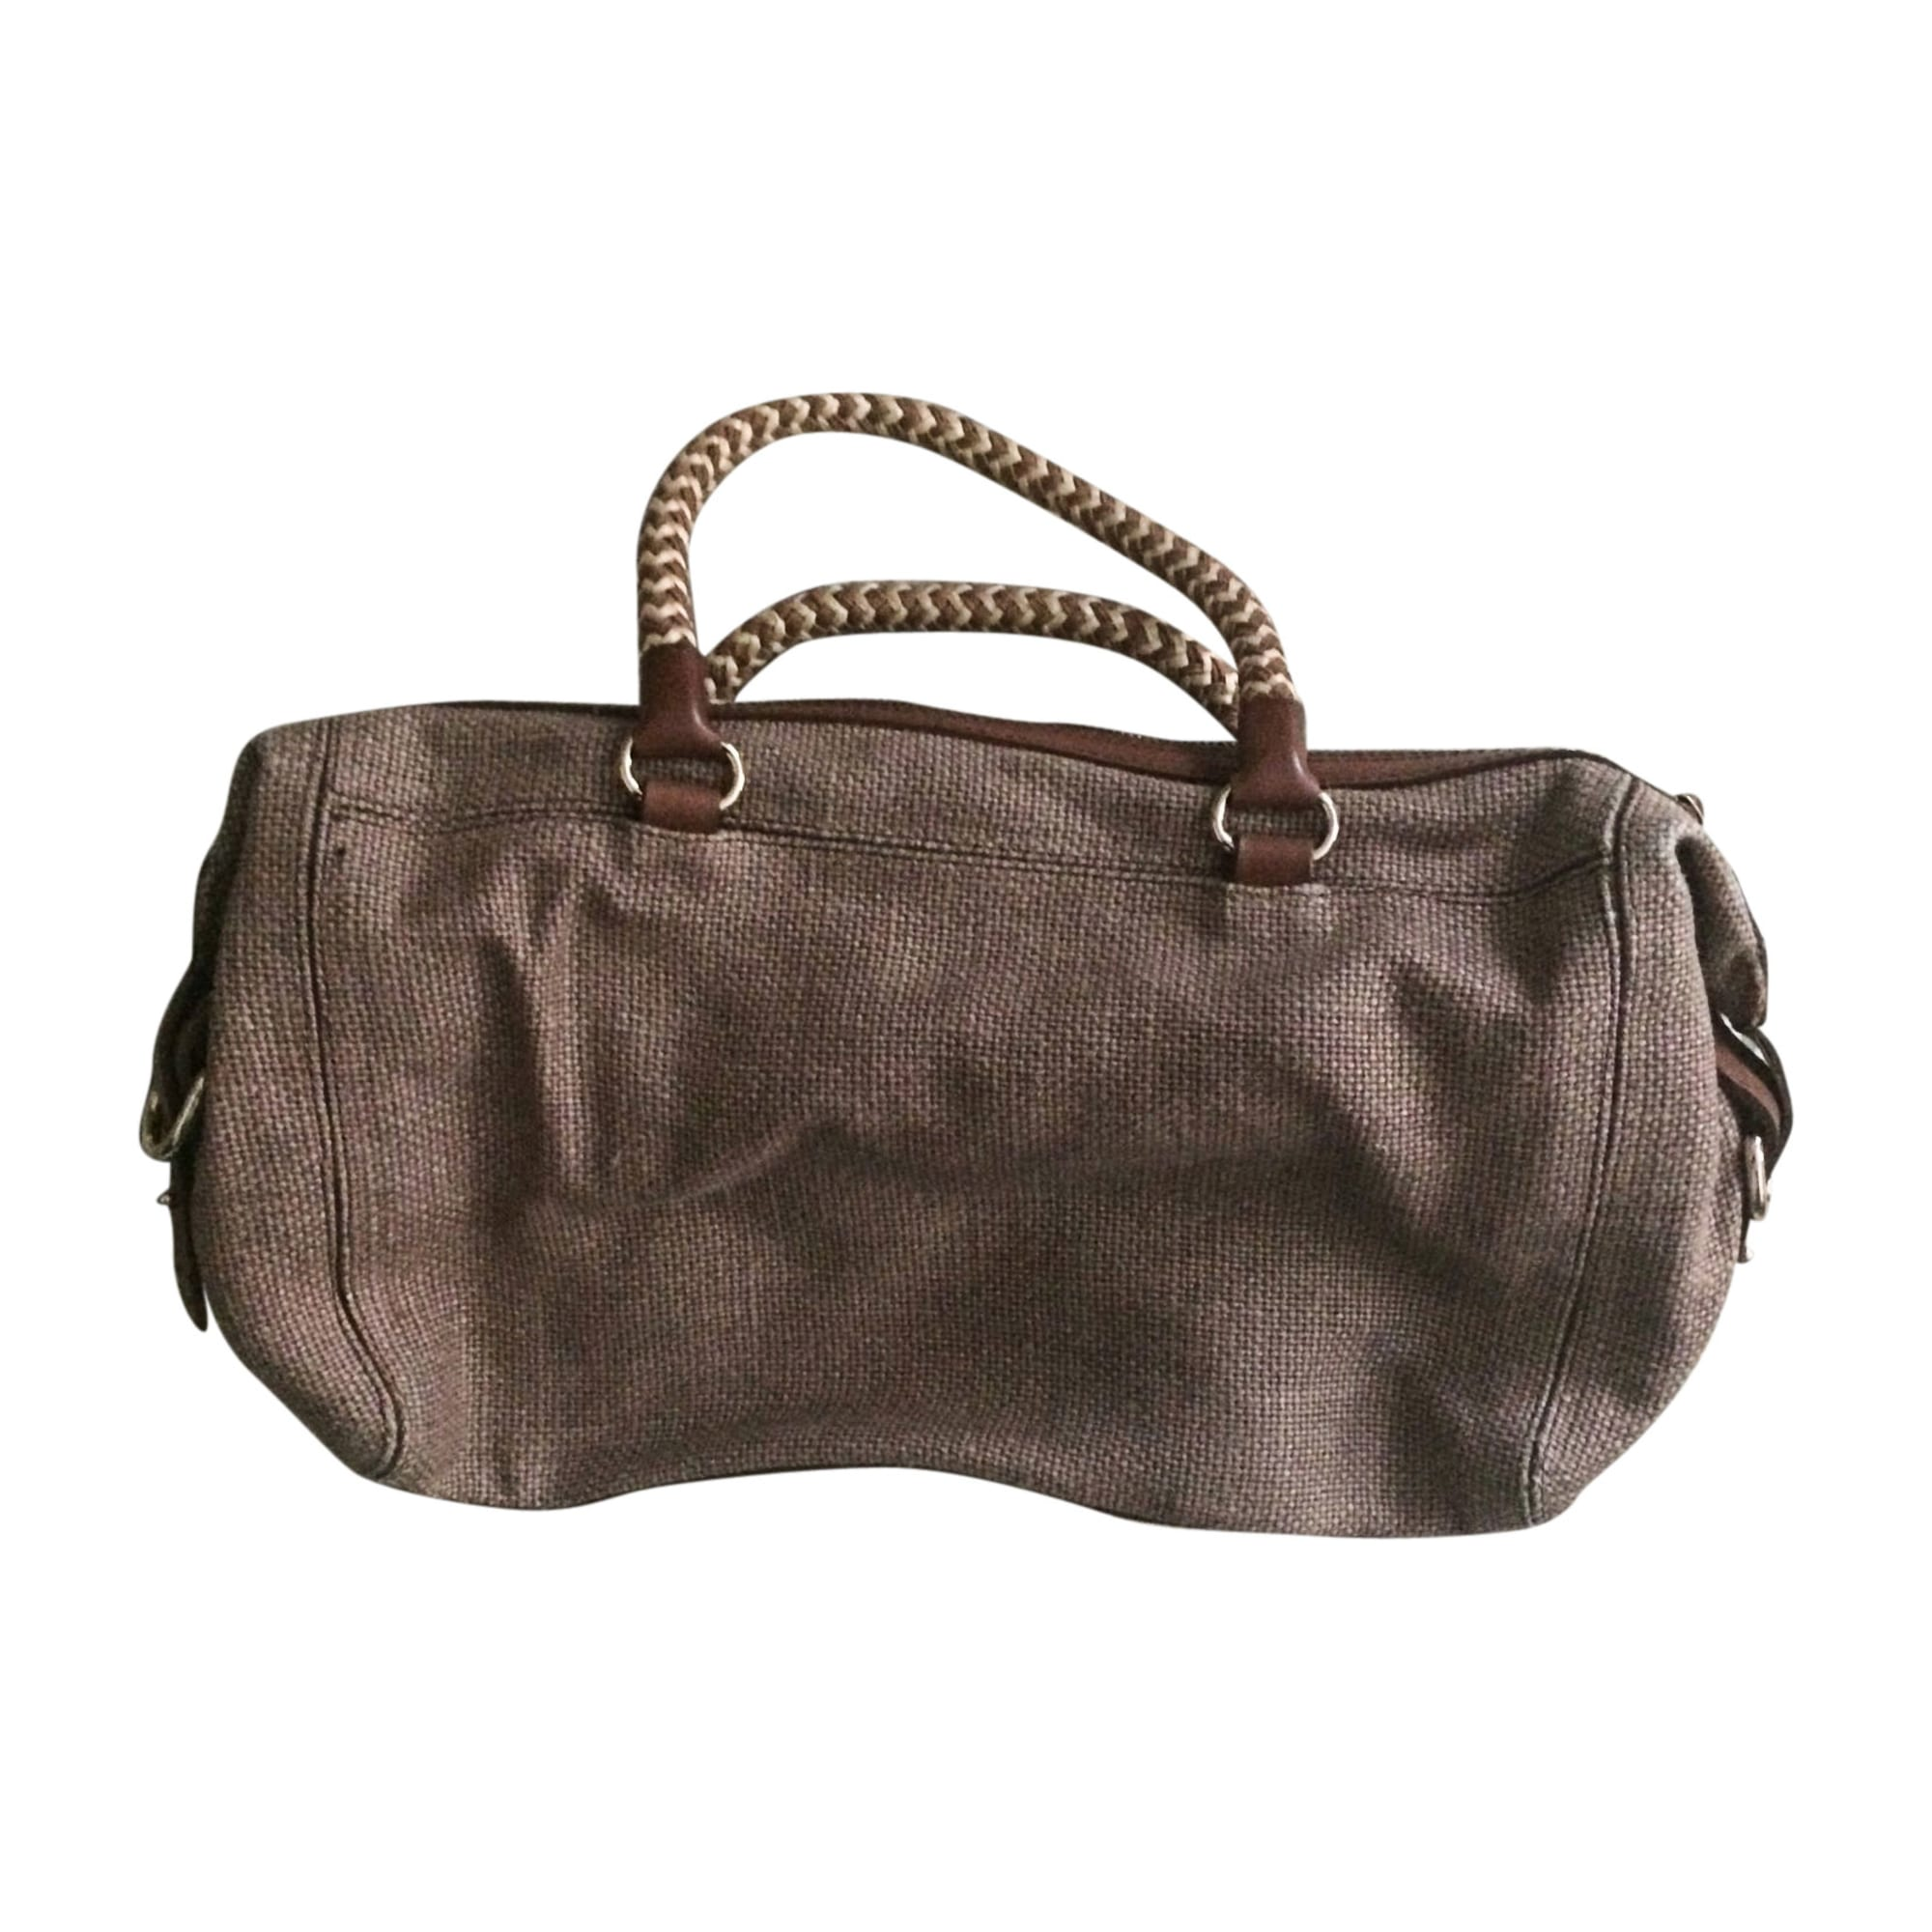 Non-Leather Handbag VANESSA BRUNO Brown